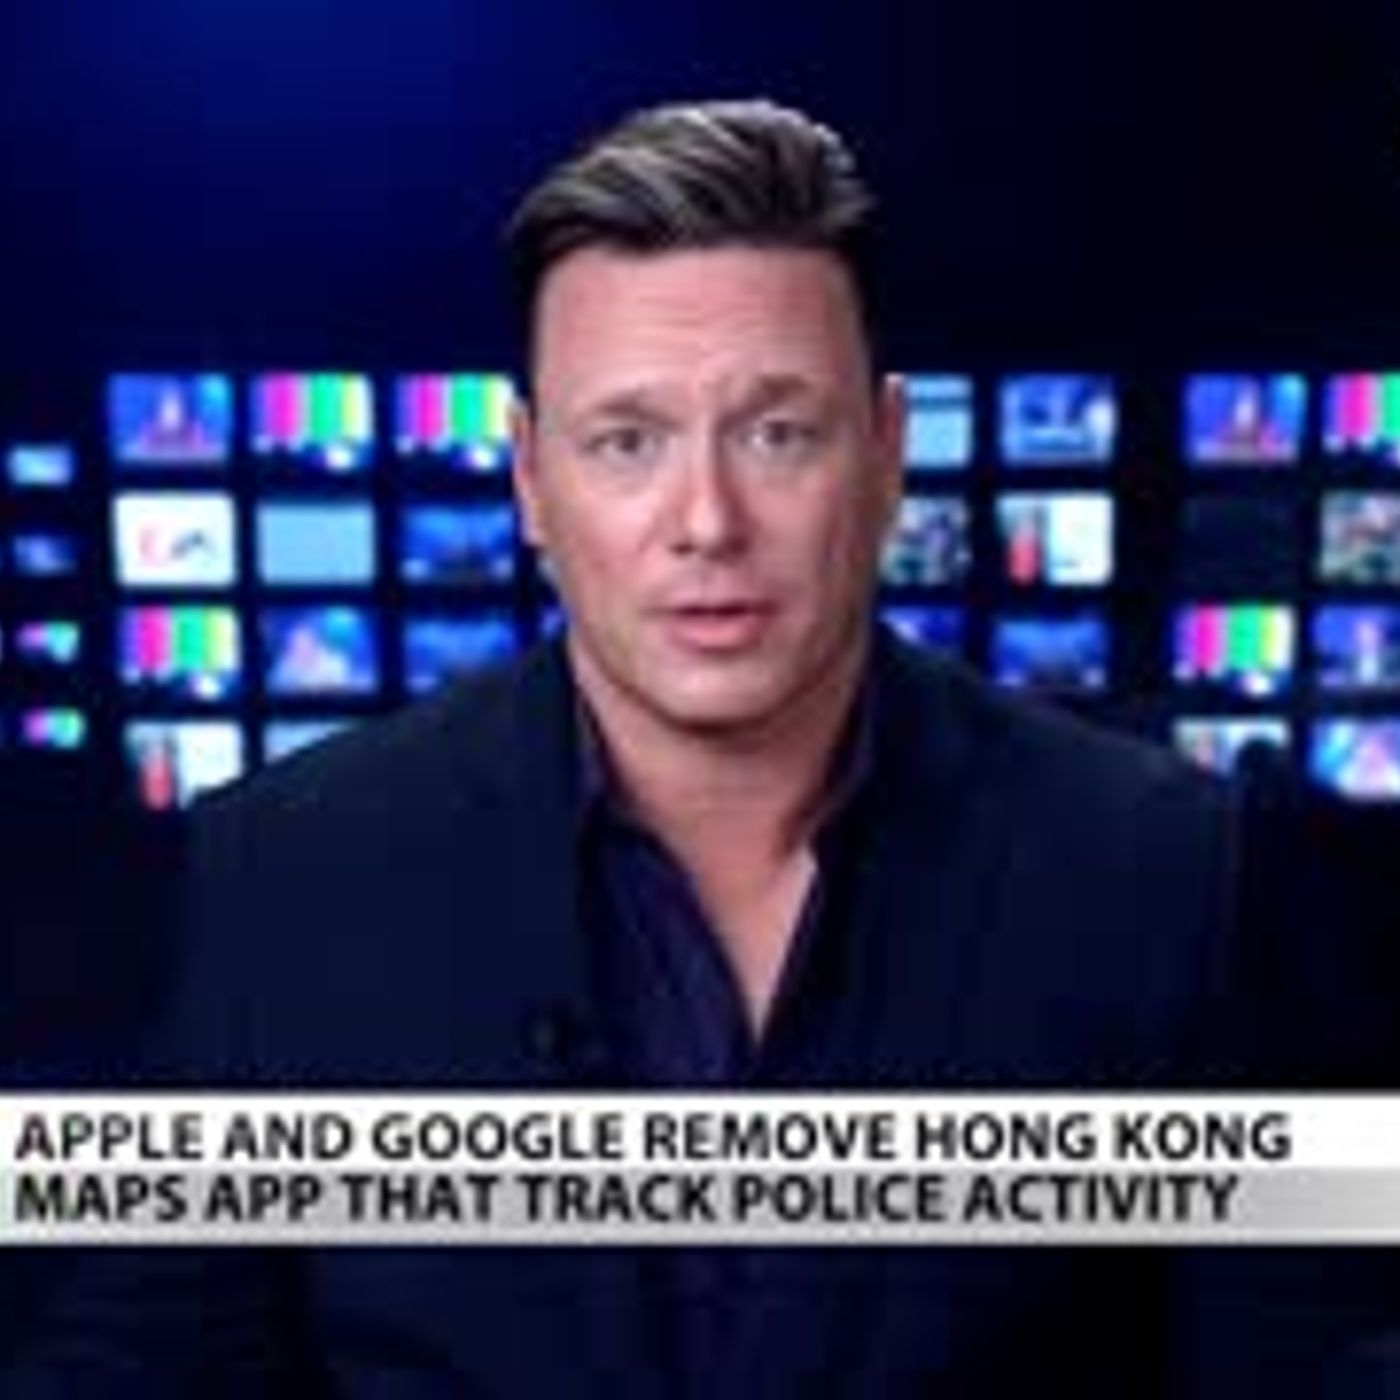 Apple Google Bow To Chinese and Pull HK Maps App